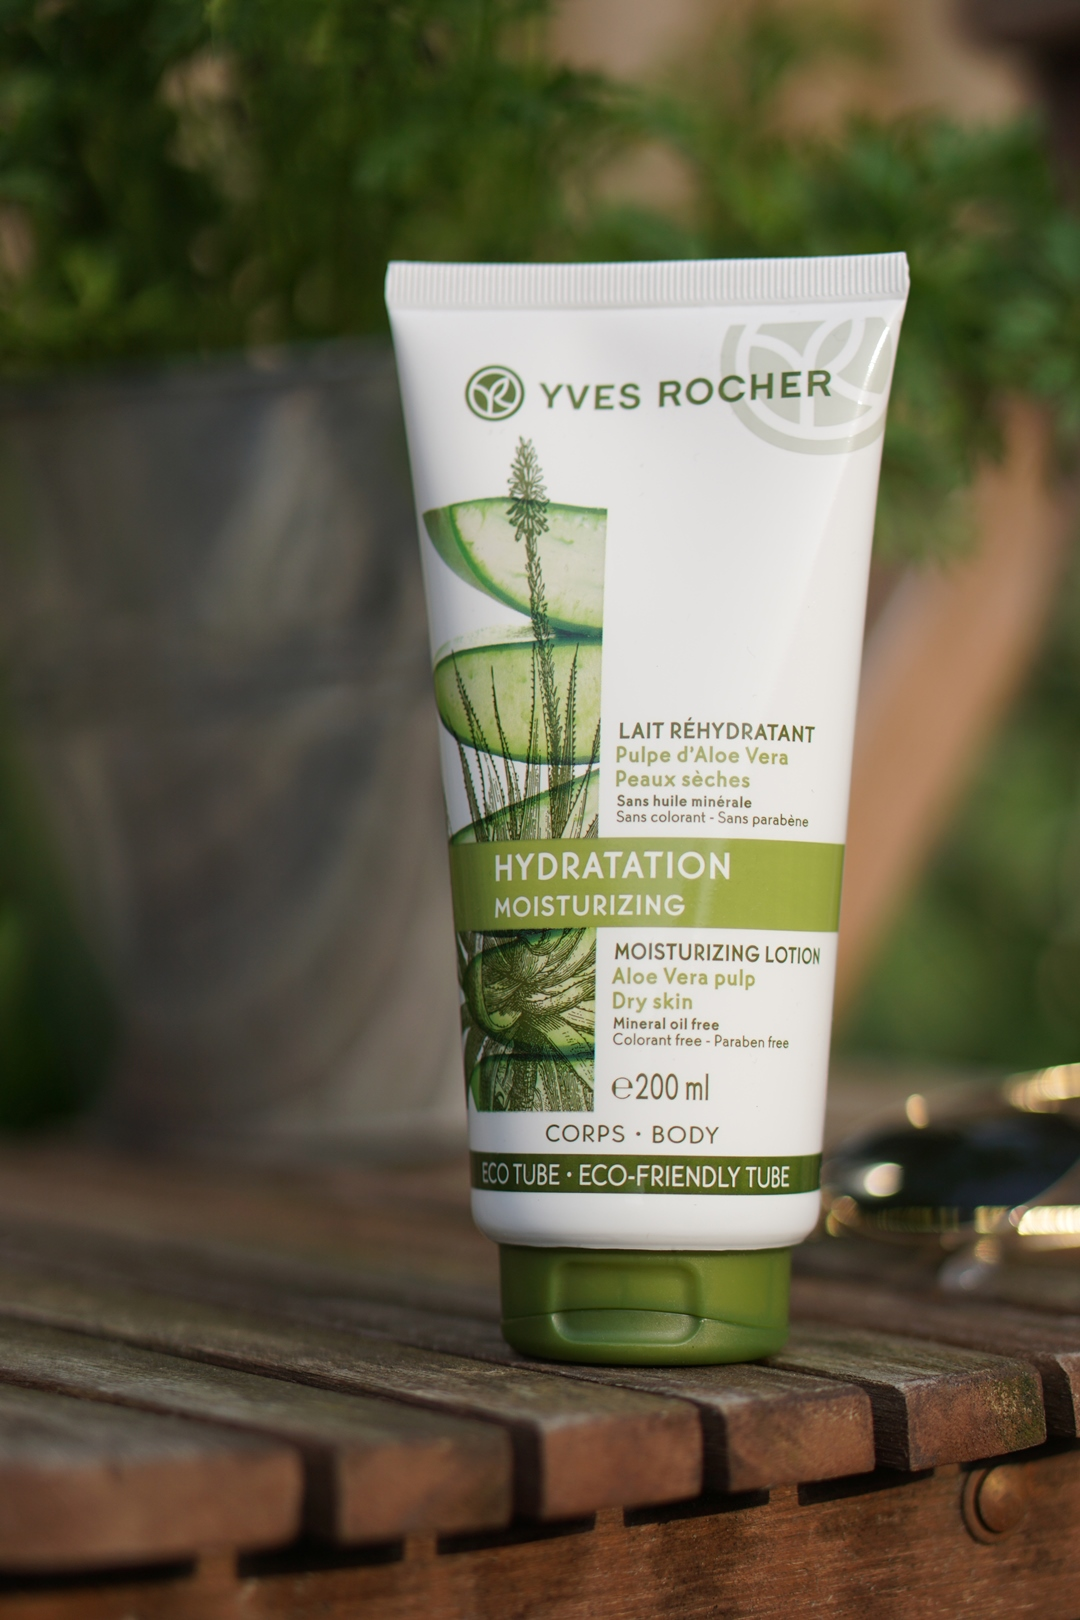 Yves Rocher Les Plaisirs Nature, summer proof legs